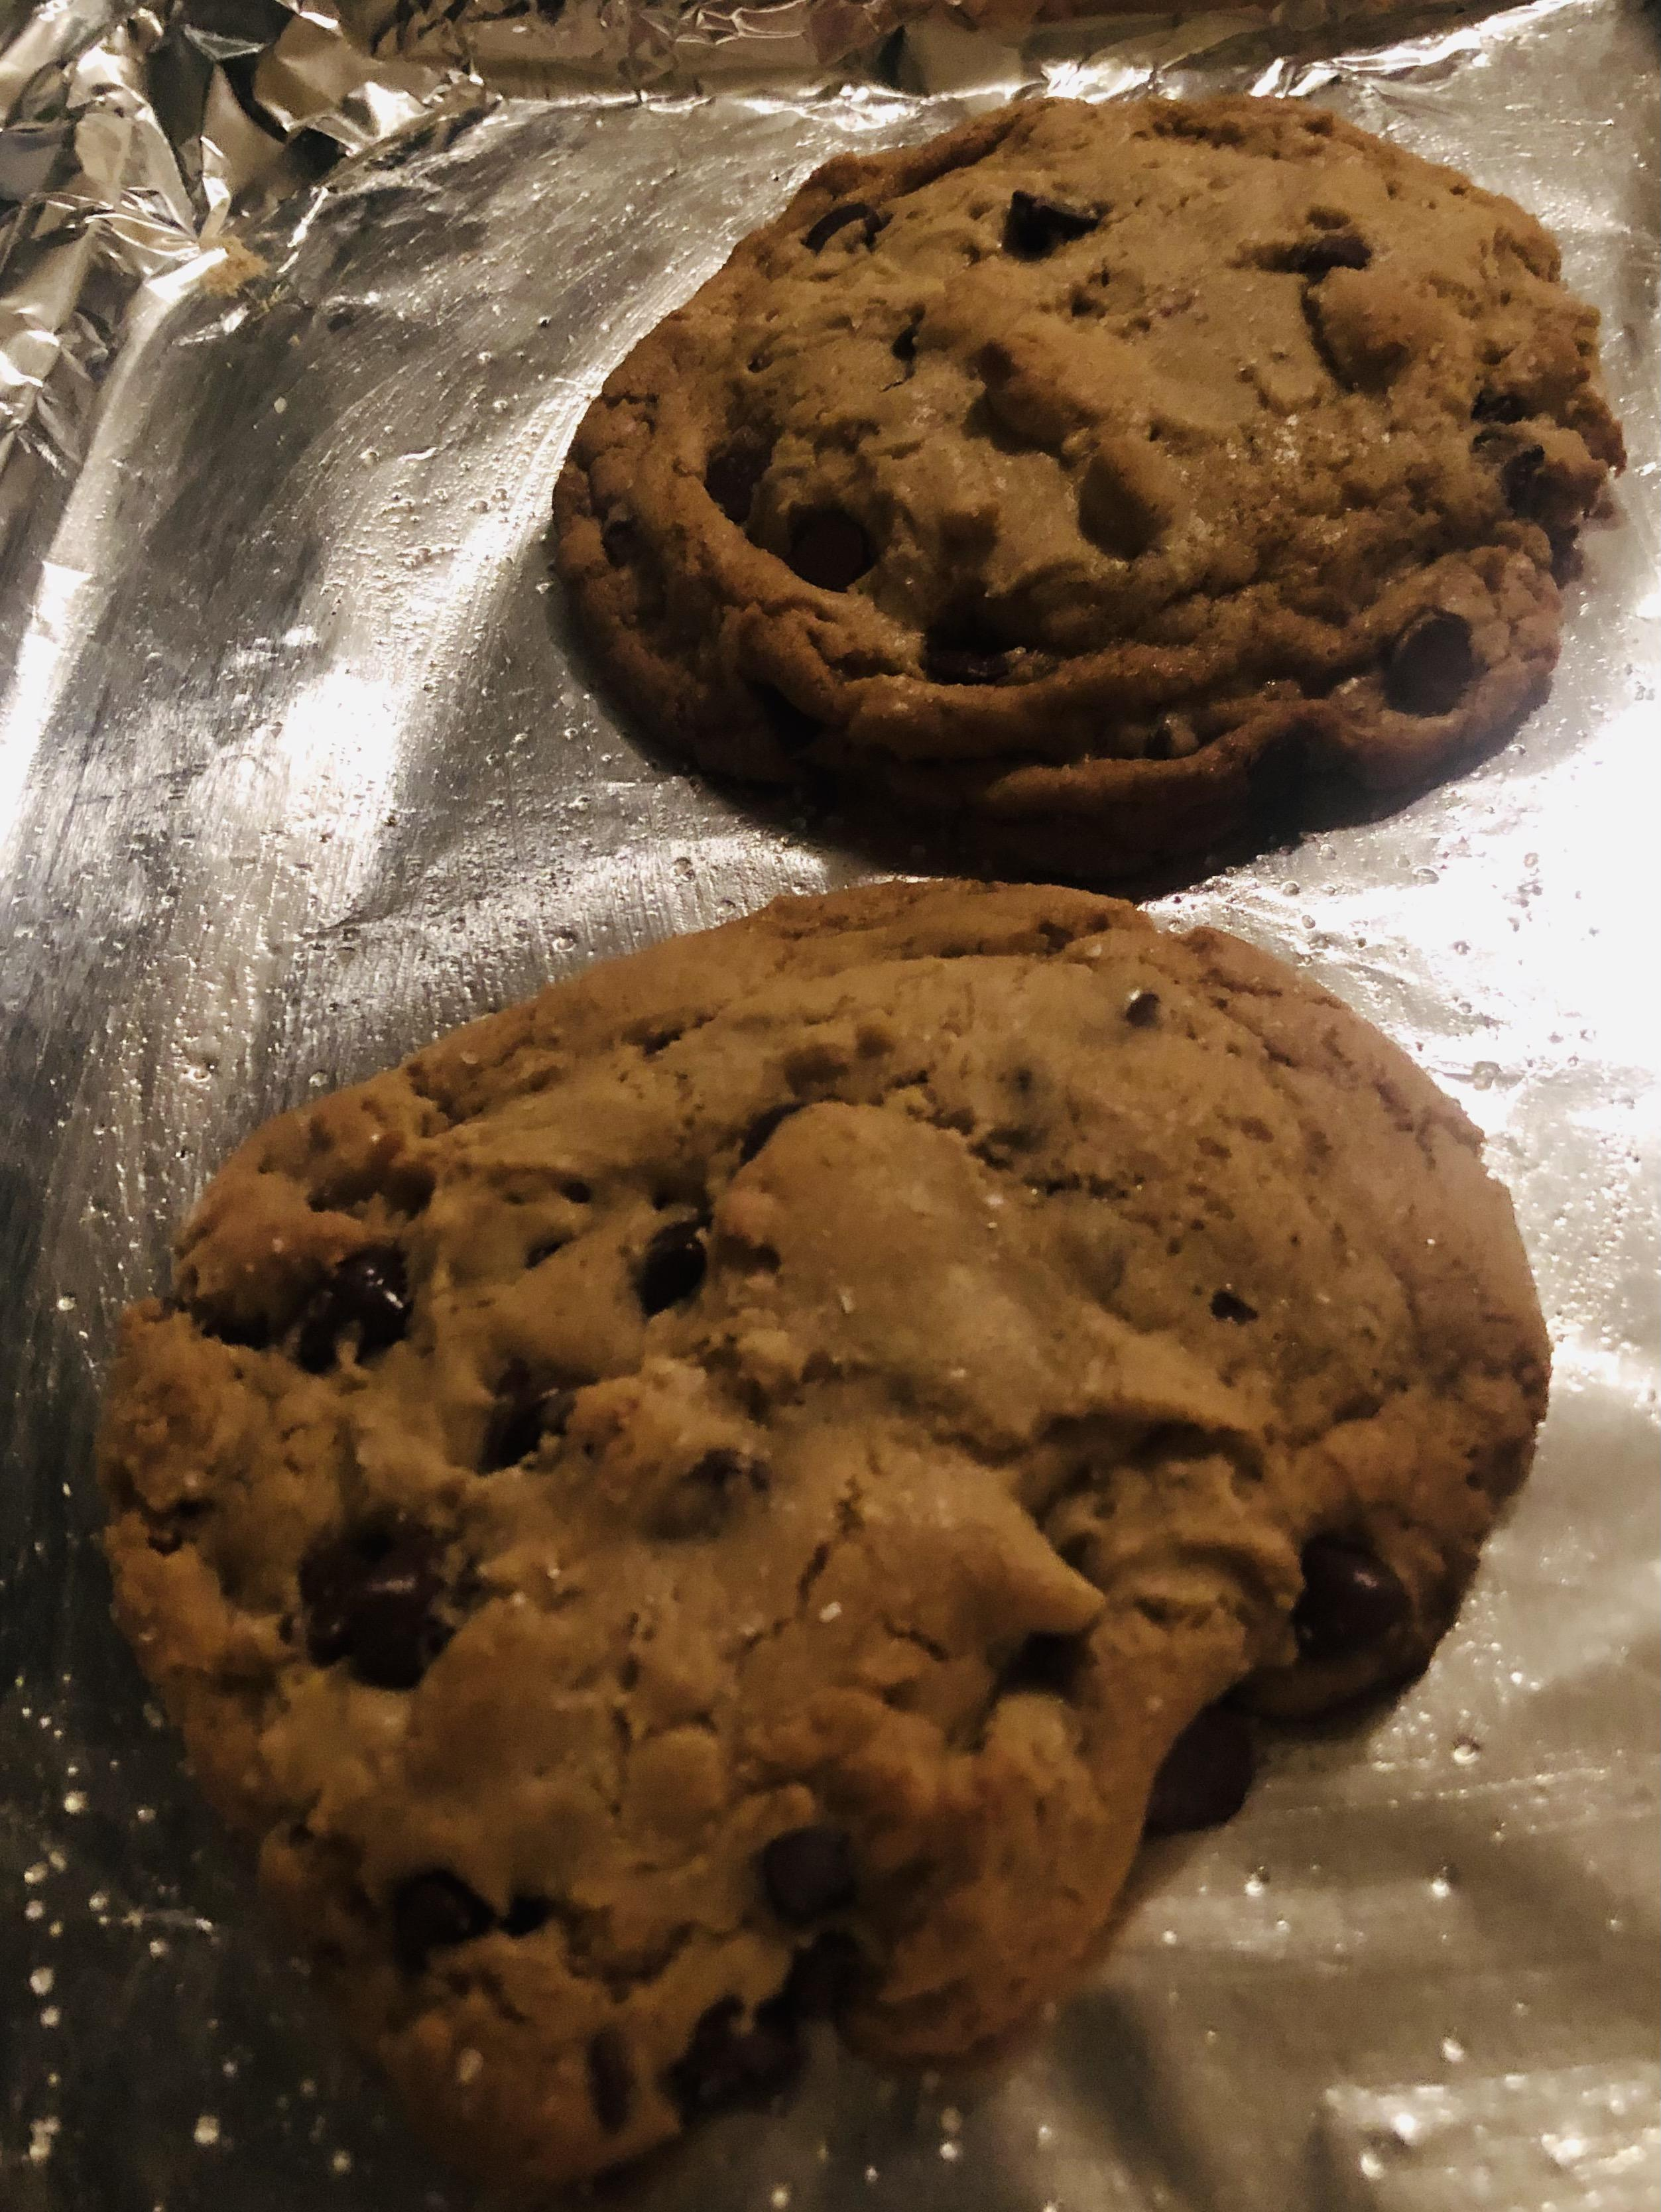 370 days sober. I've had more than 370 cookies during this time